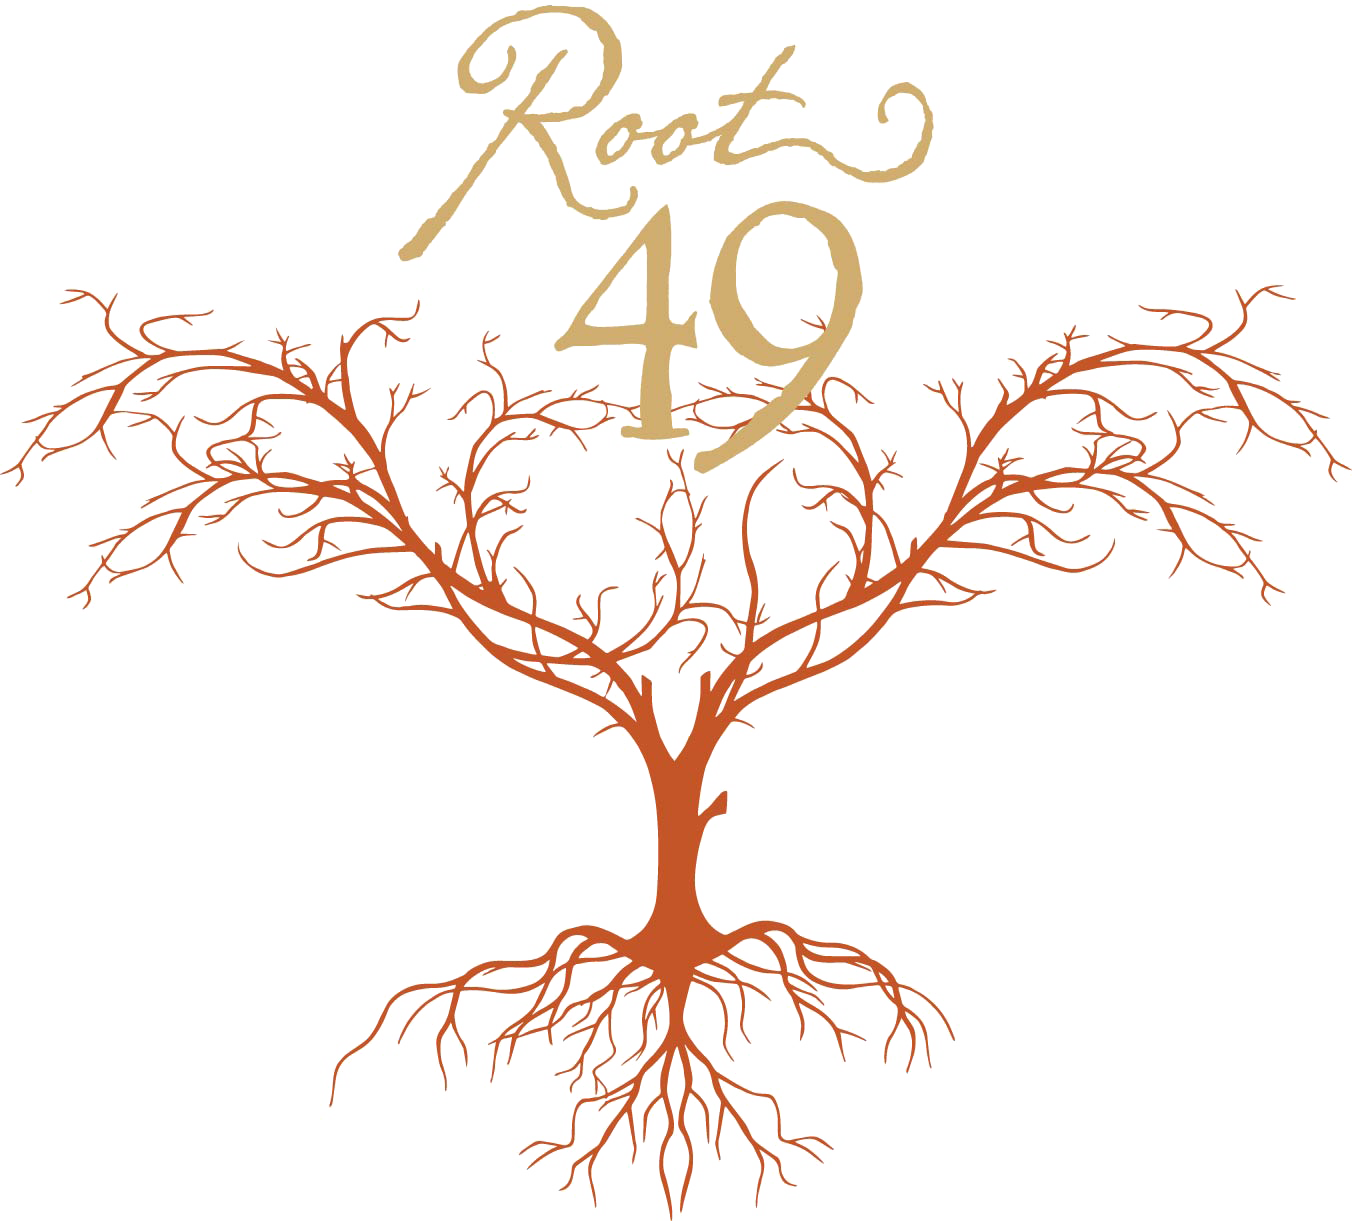 Root 49 by Naggiar Vineyards